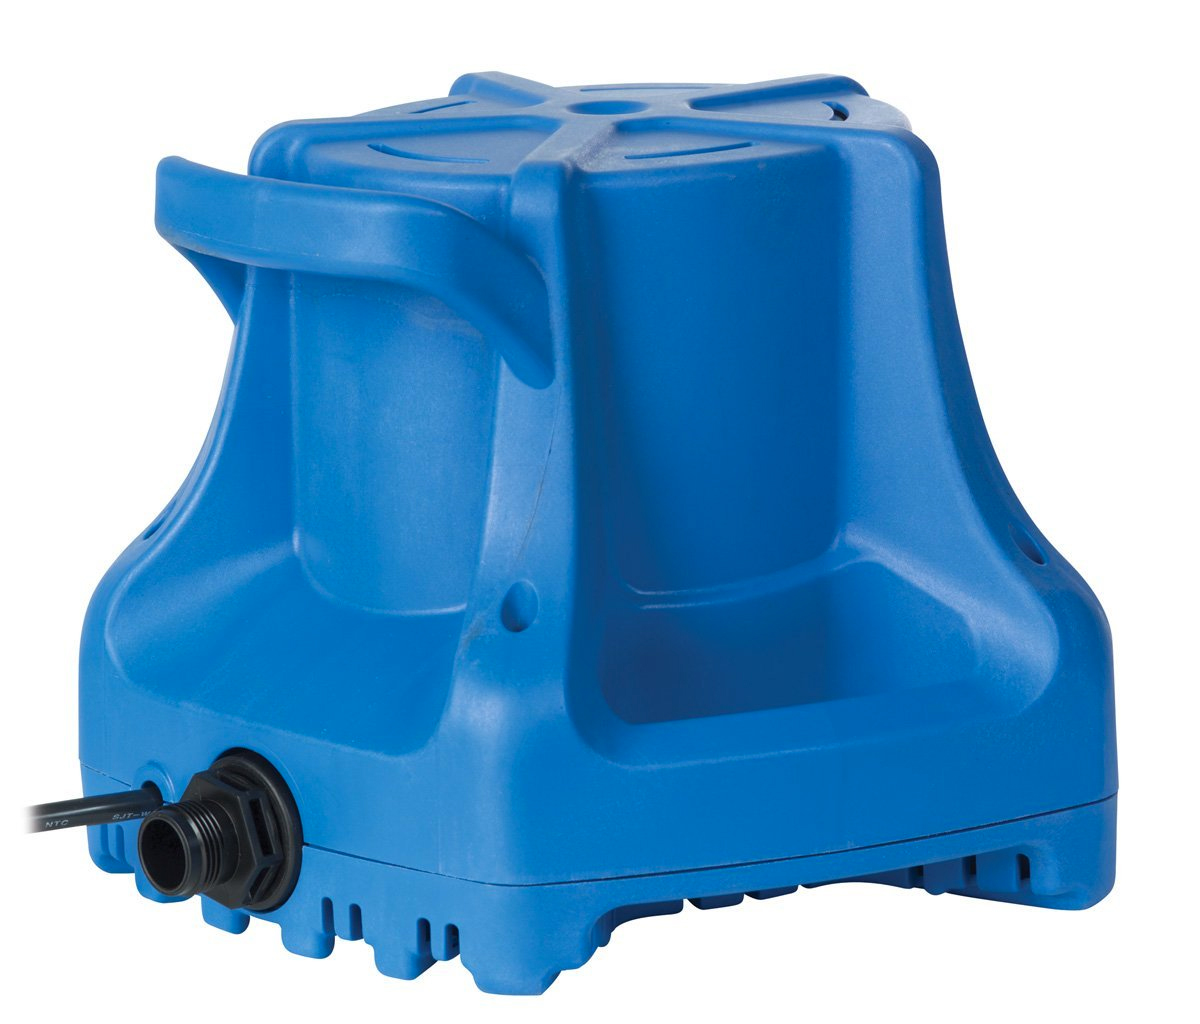 Details about Super Pro 1745 GPH Submersible Automatic Swimming Pool Cover  Pump SPG APCP-1700